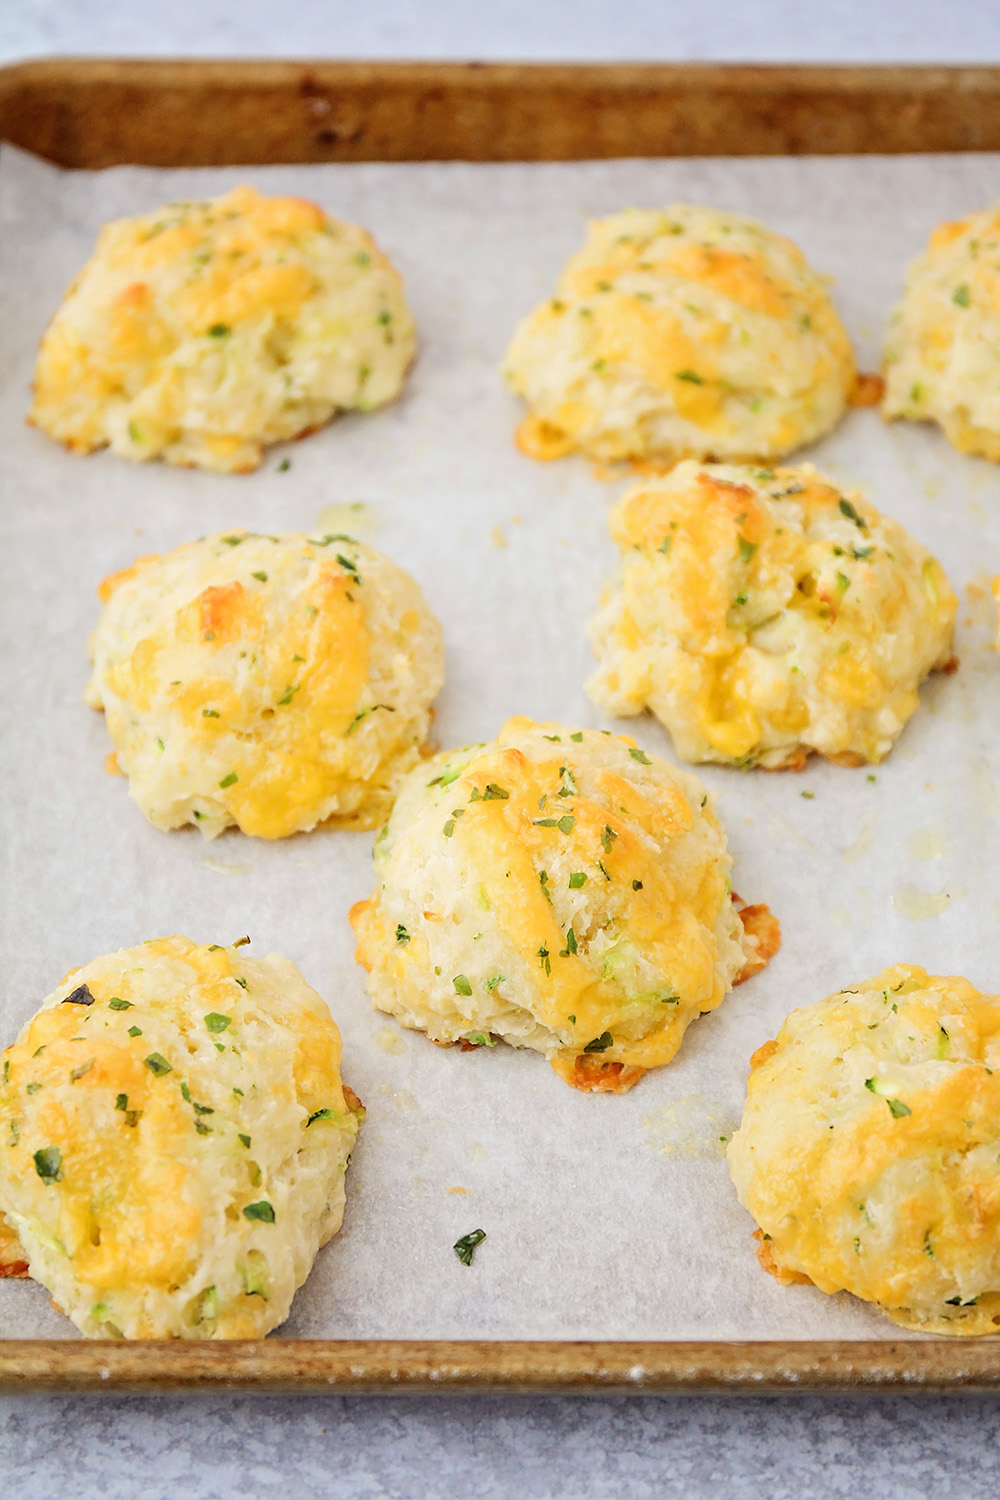 These tender and flavorful cheddar zucchini biscuits are so delicious, and quick and easy to make!